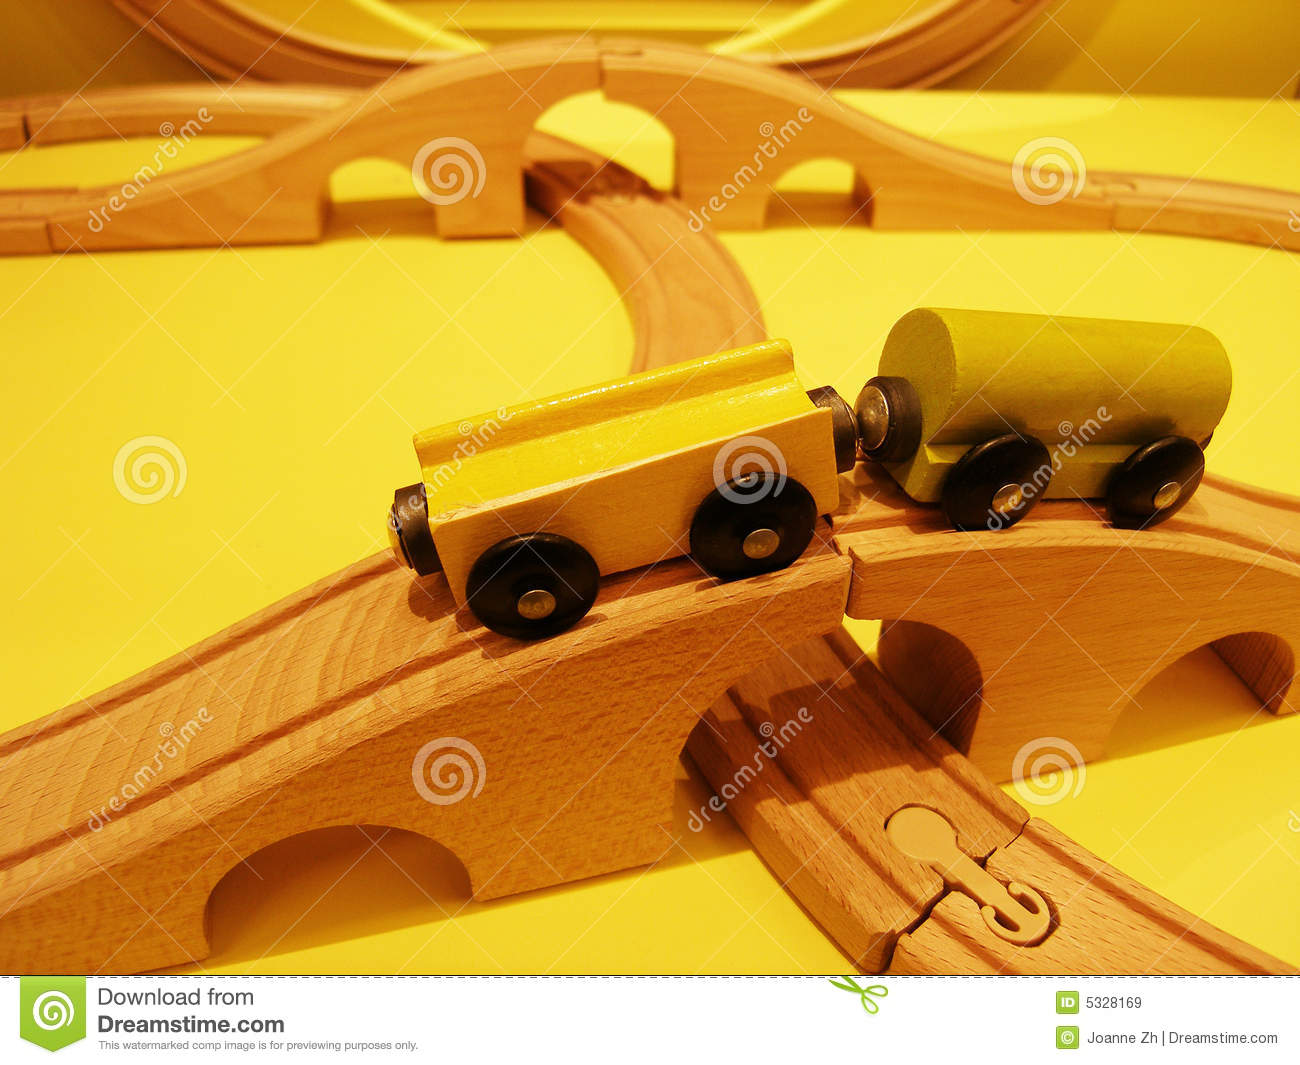 Wooden Toys Train Set Royalty Free Stock Images - Image: 5328169